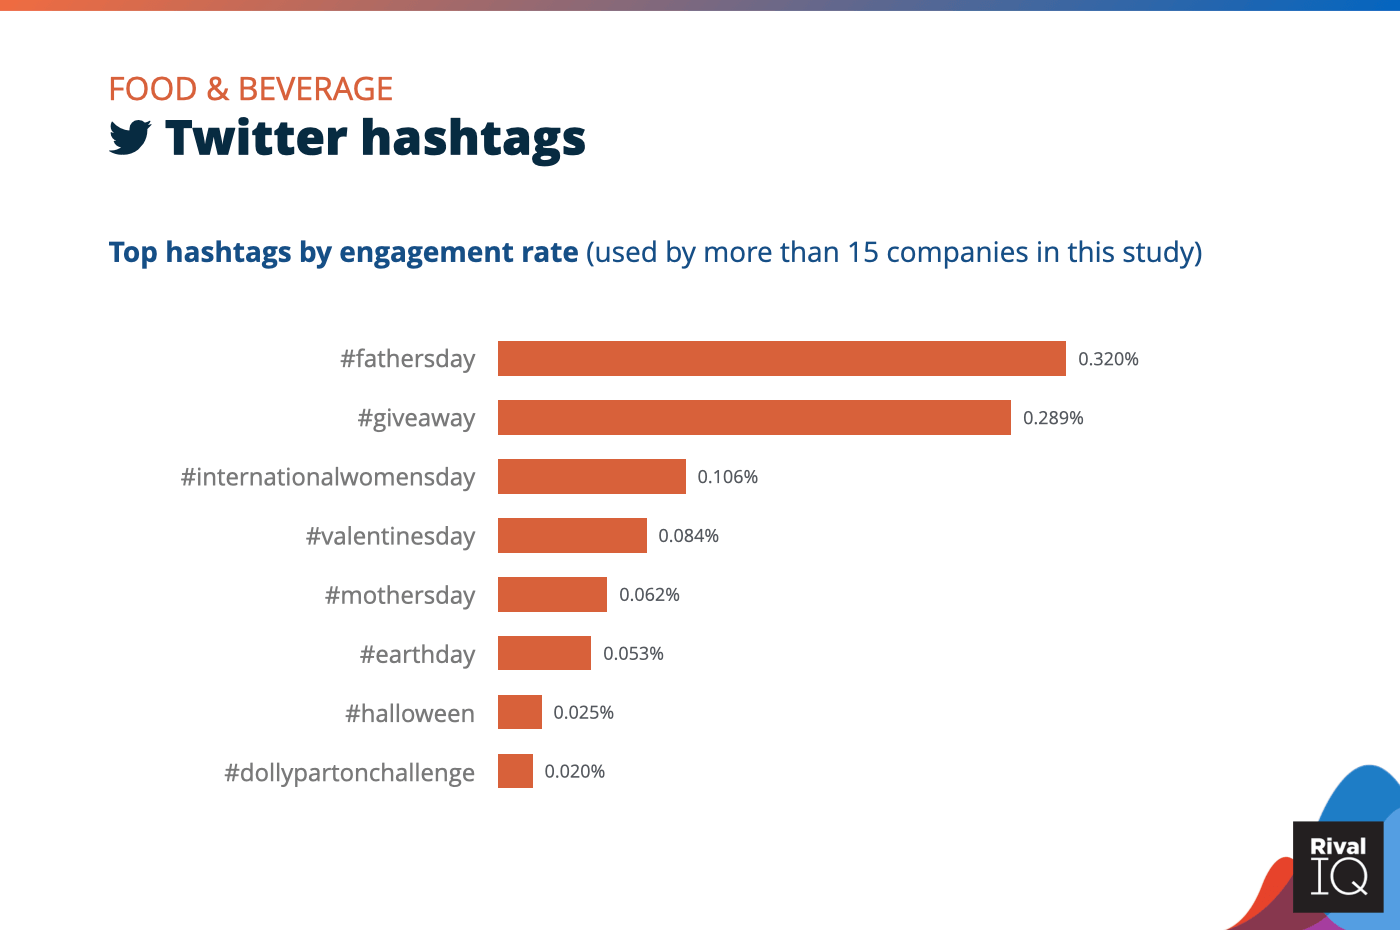 Chart of social media benchmarks for Top Twitter hashtags by engagement rate, Food & Beverage